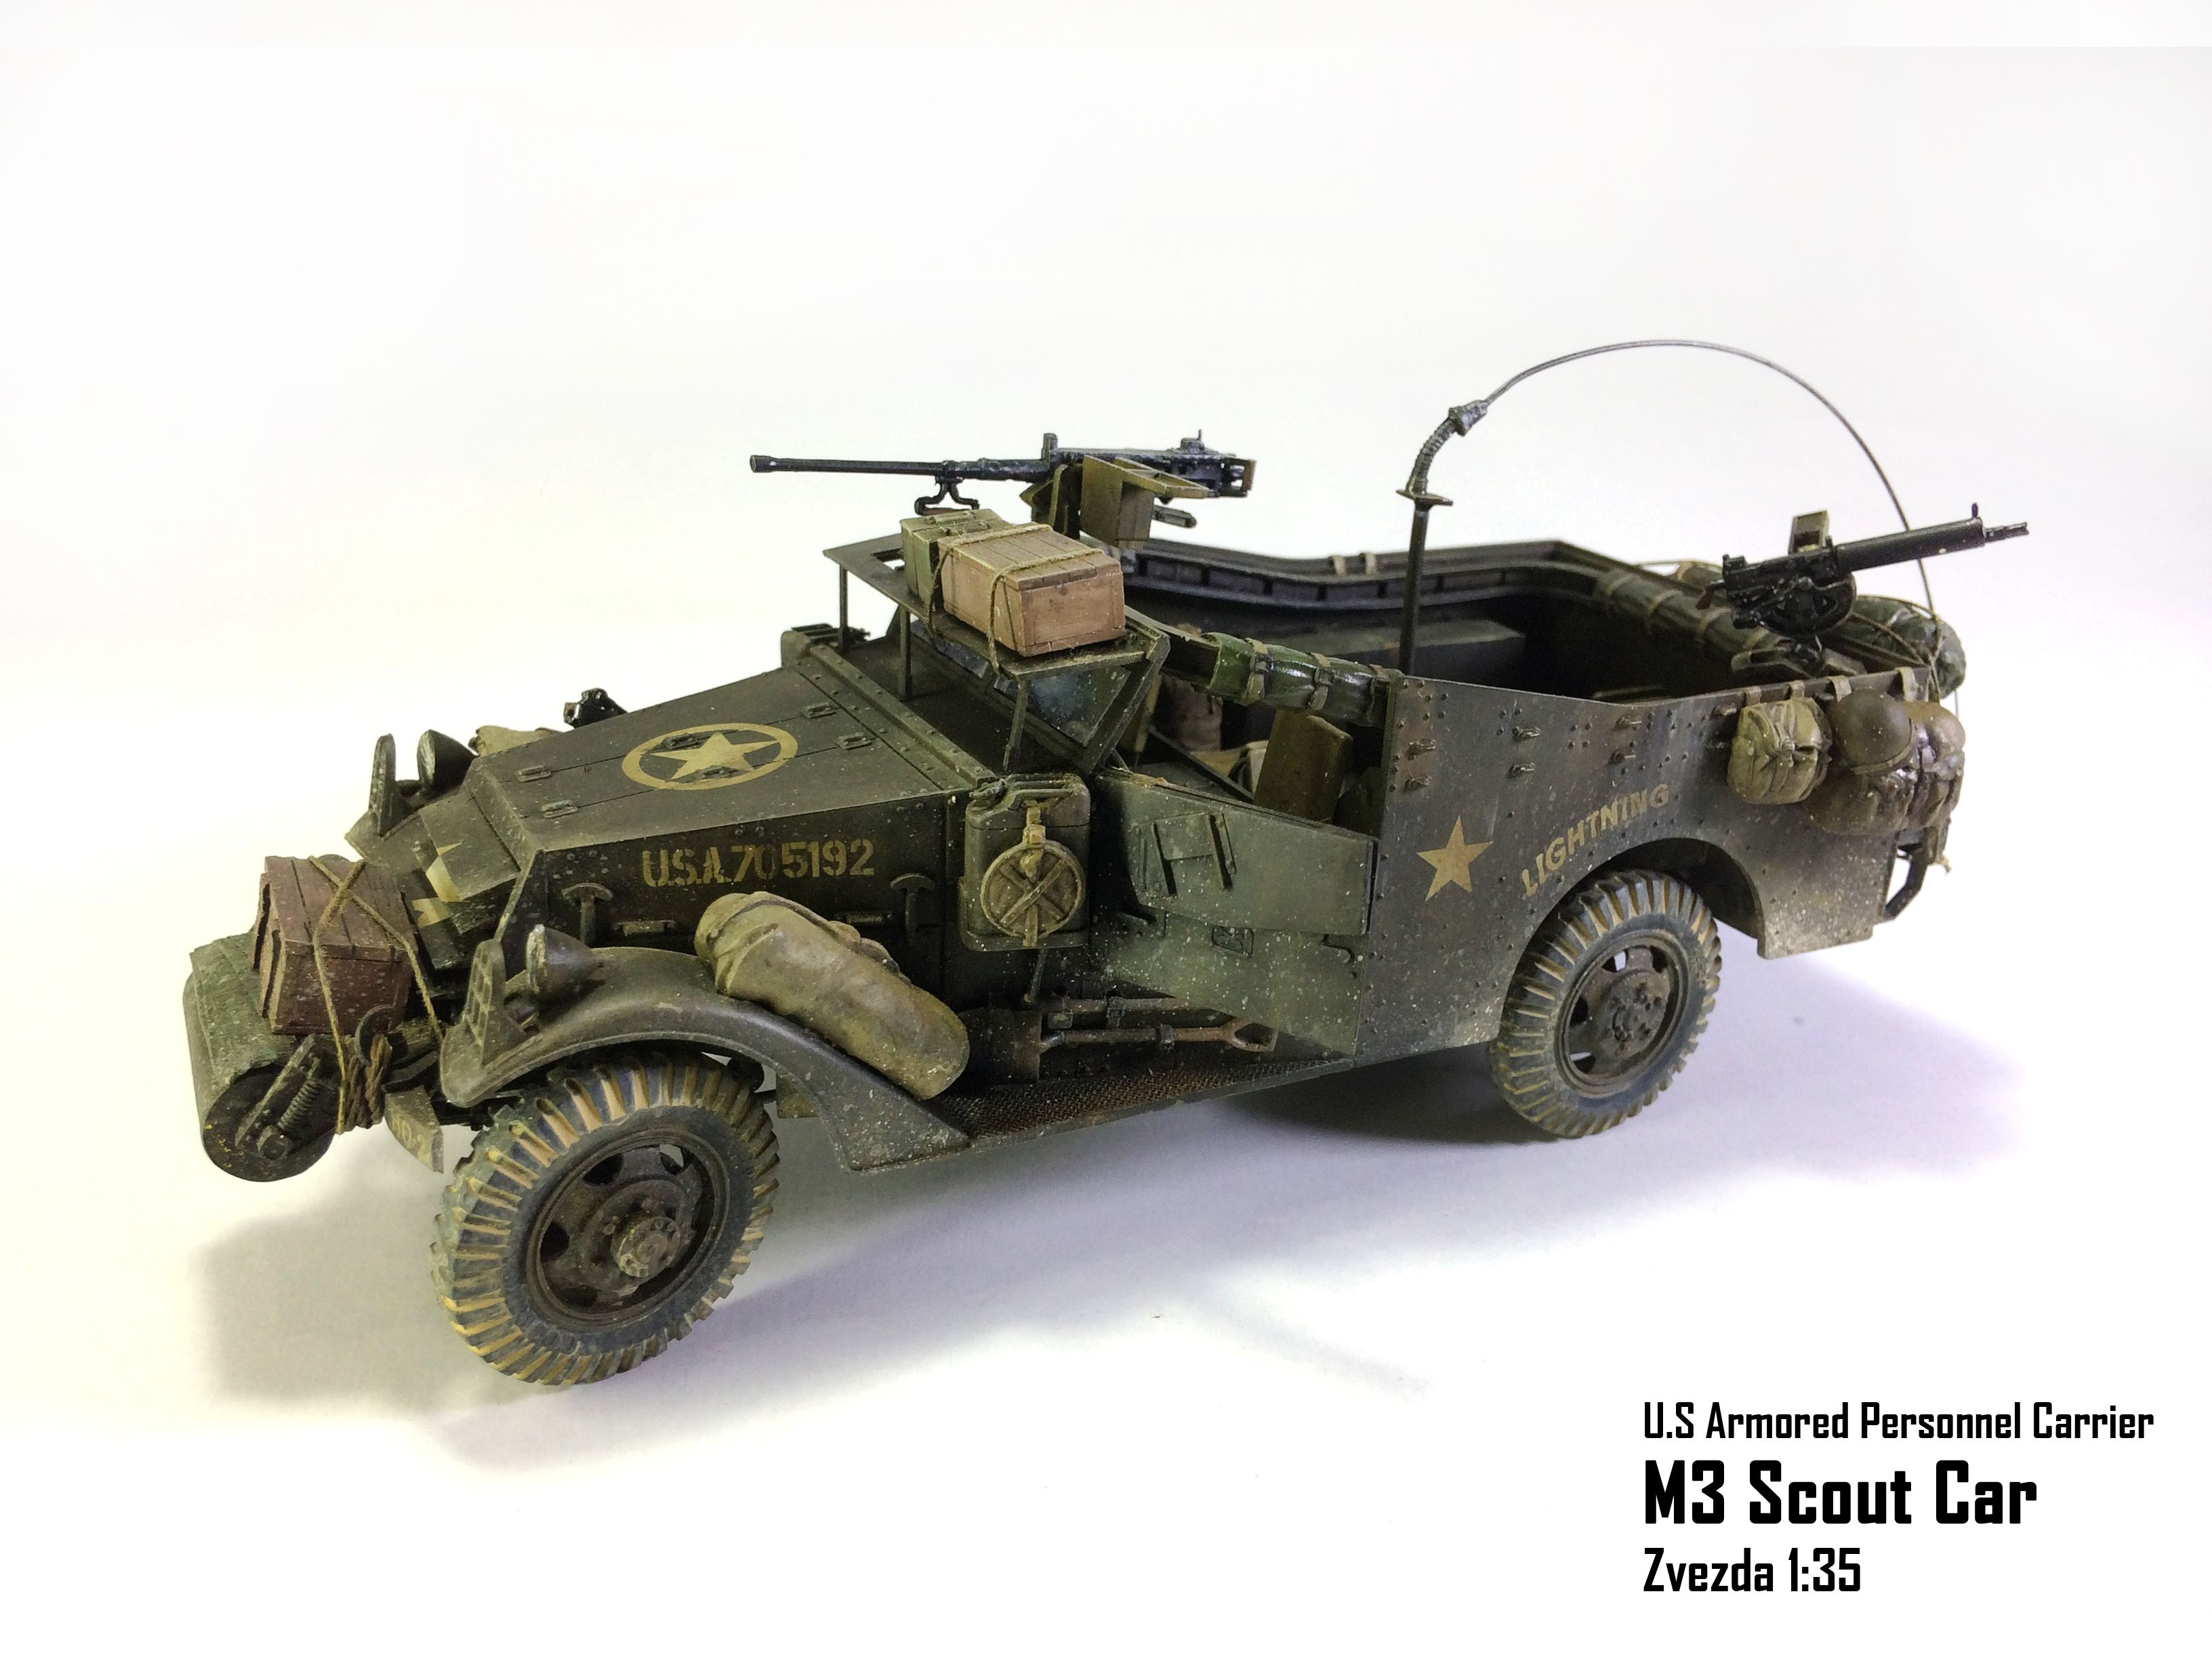 U.S Armored Personnel Carrier M3 Scout Car Zvezda 135